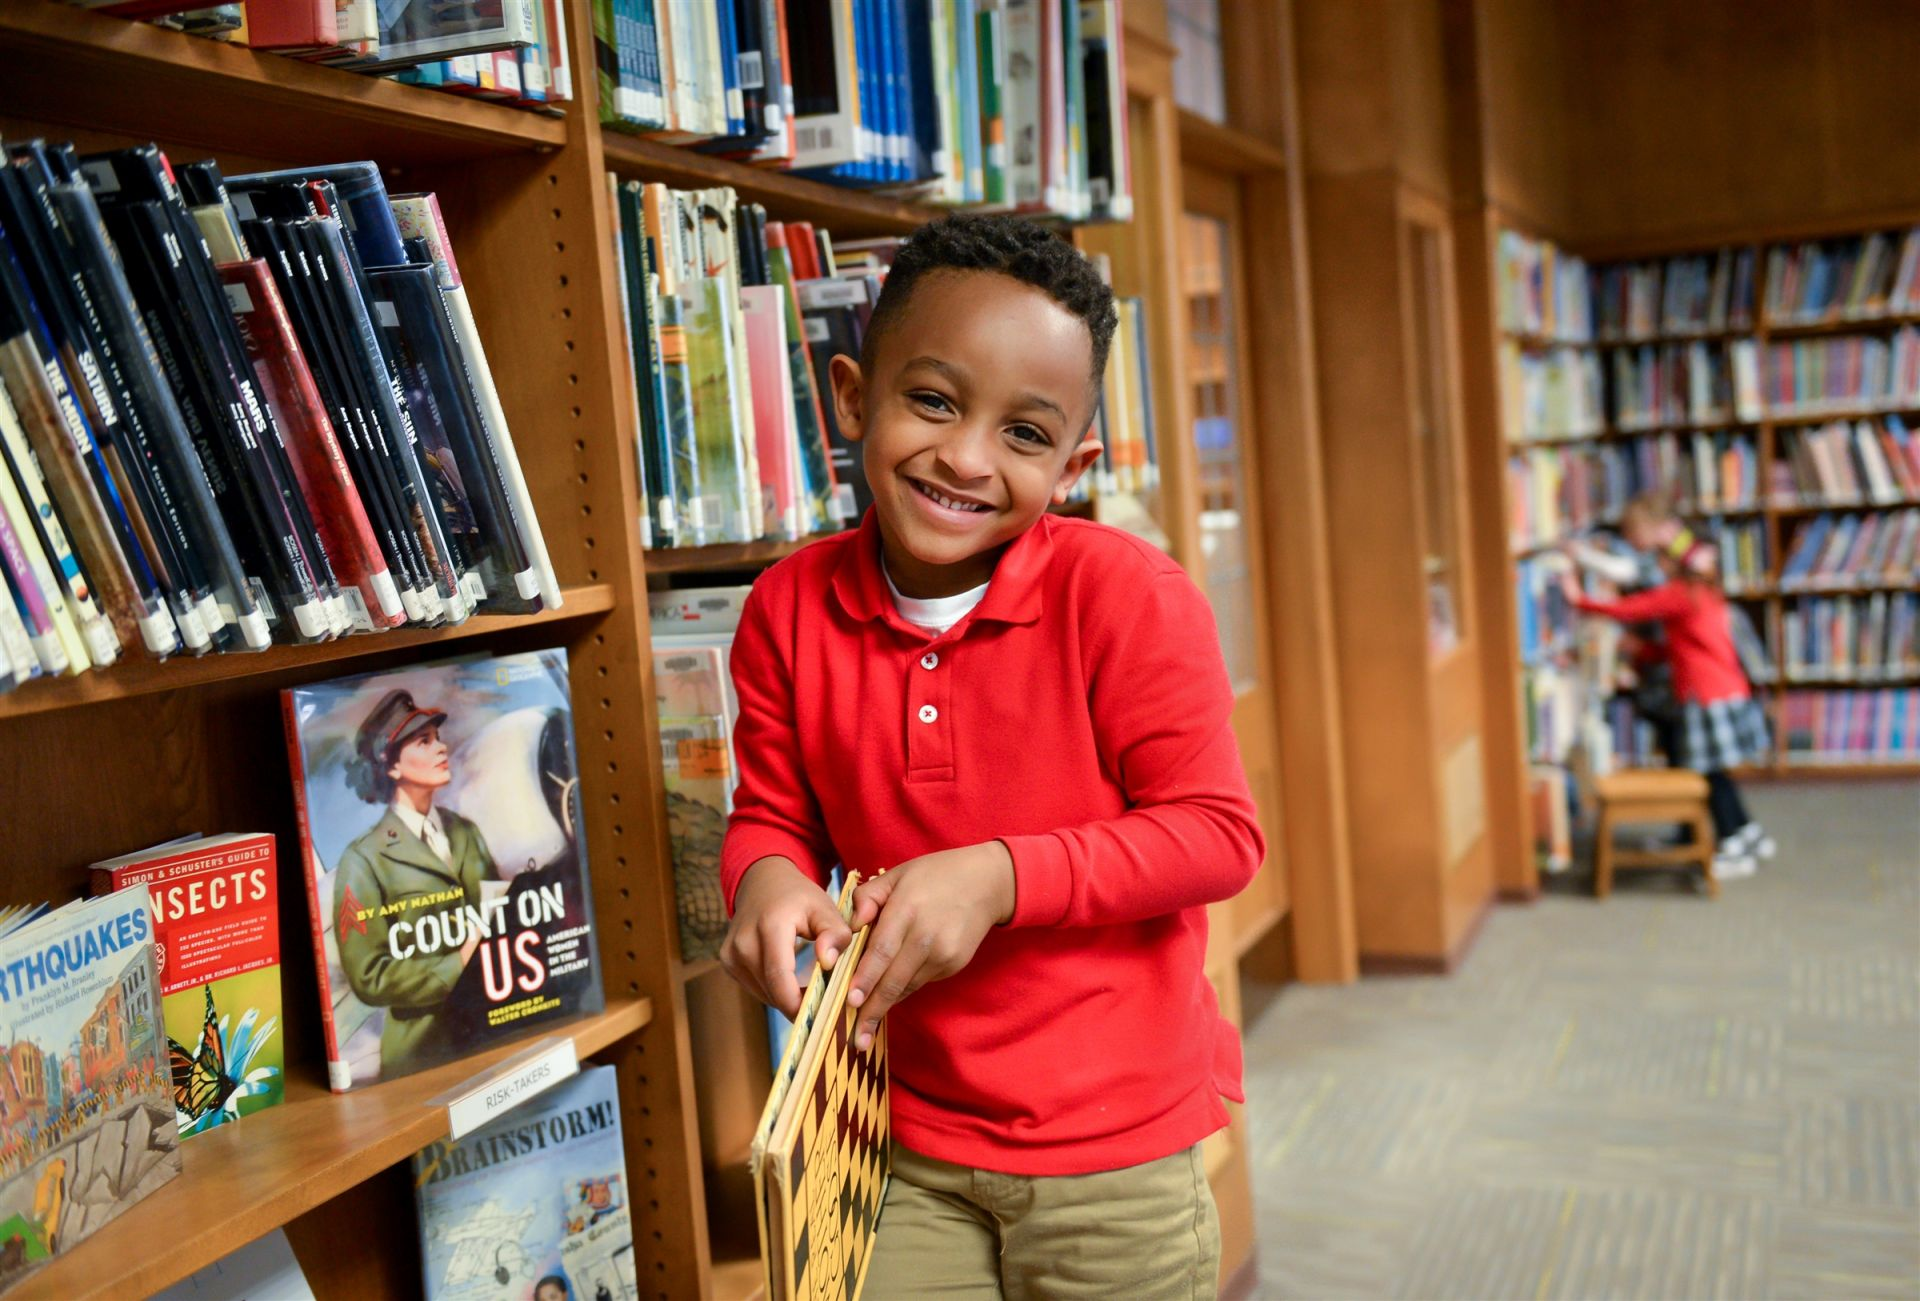 Elementary Student in School Library